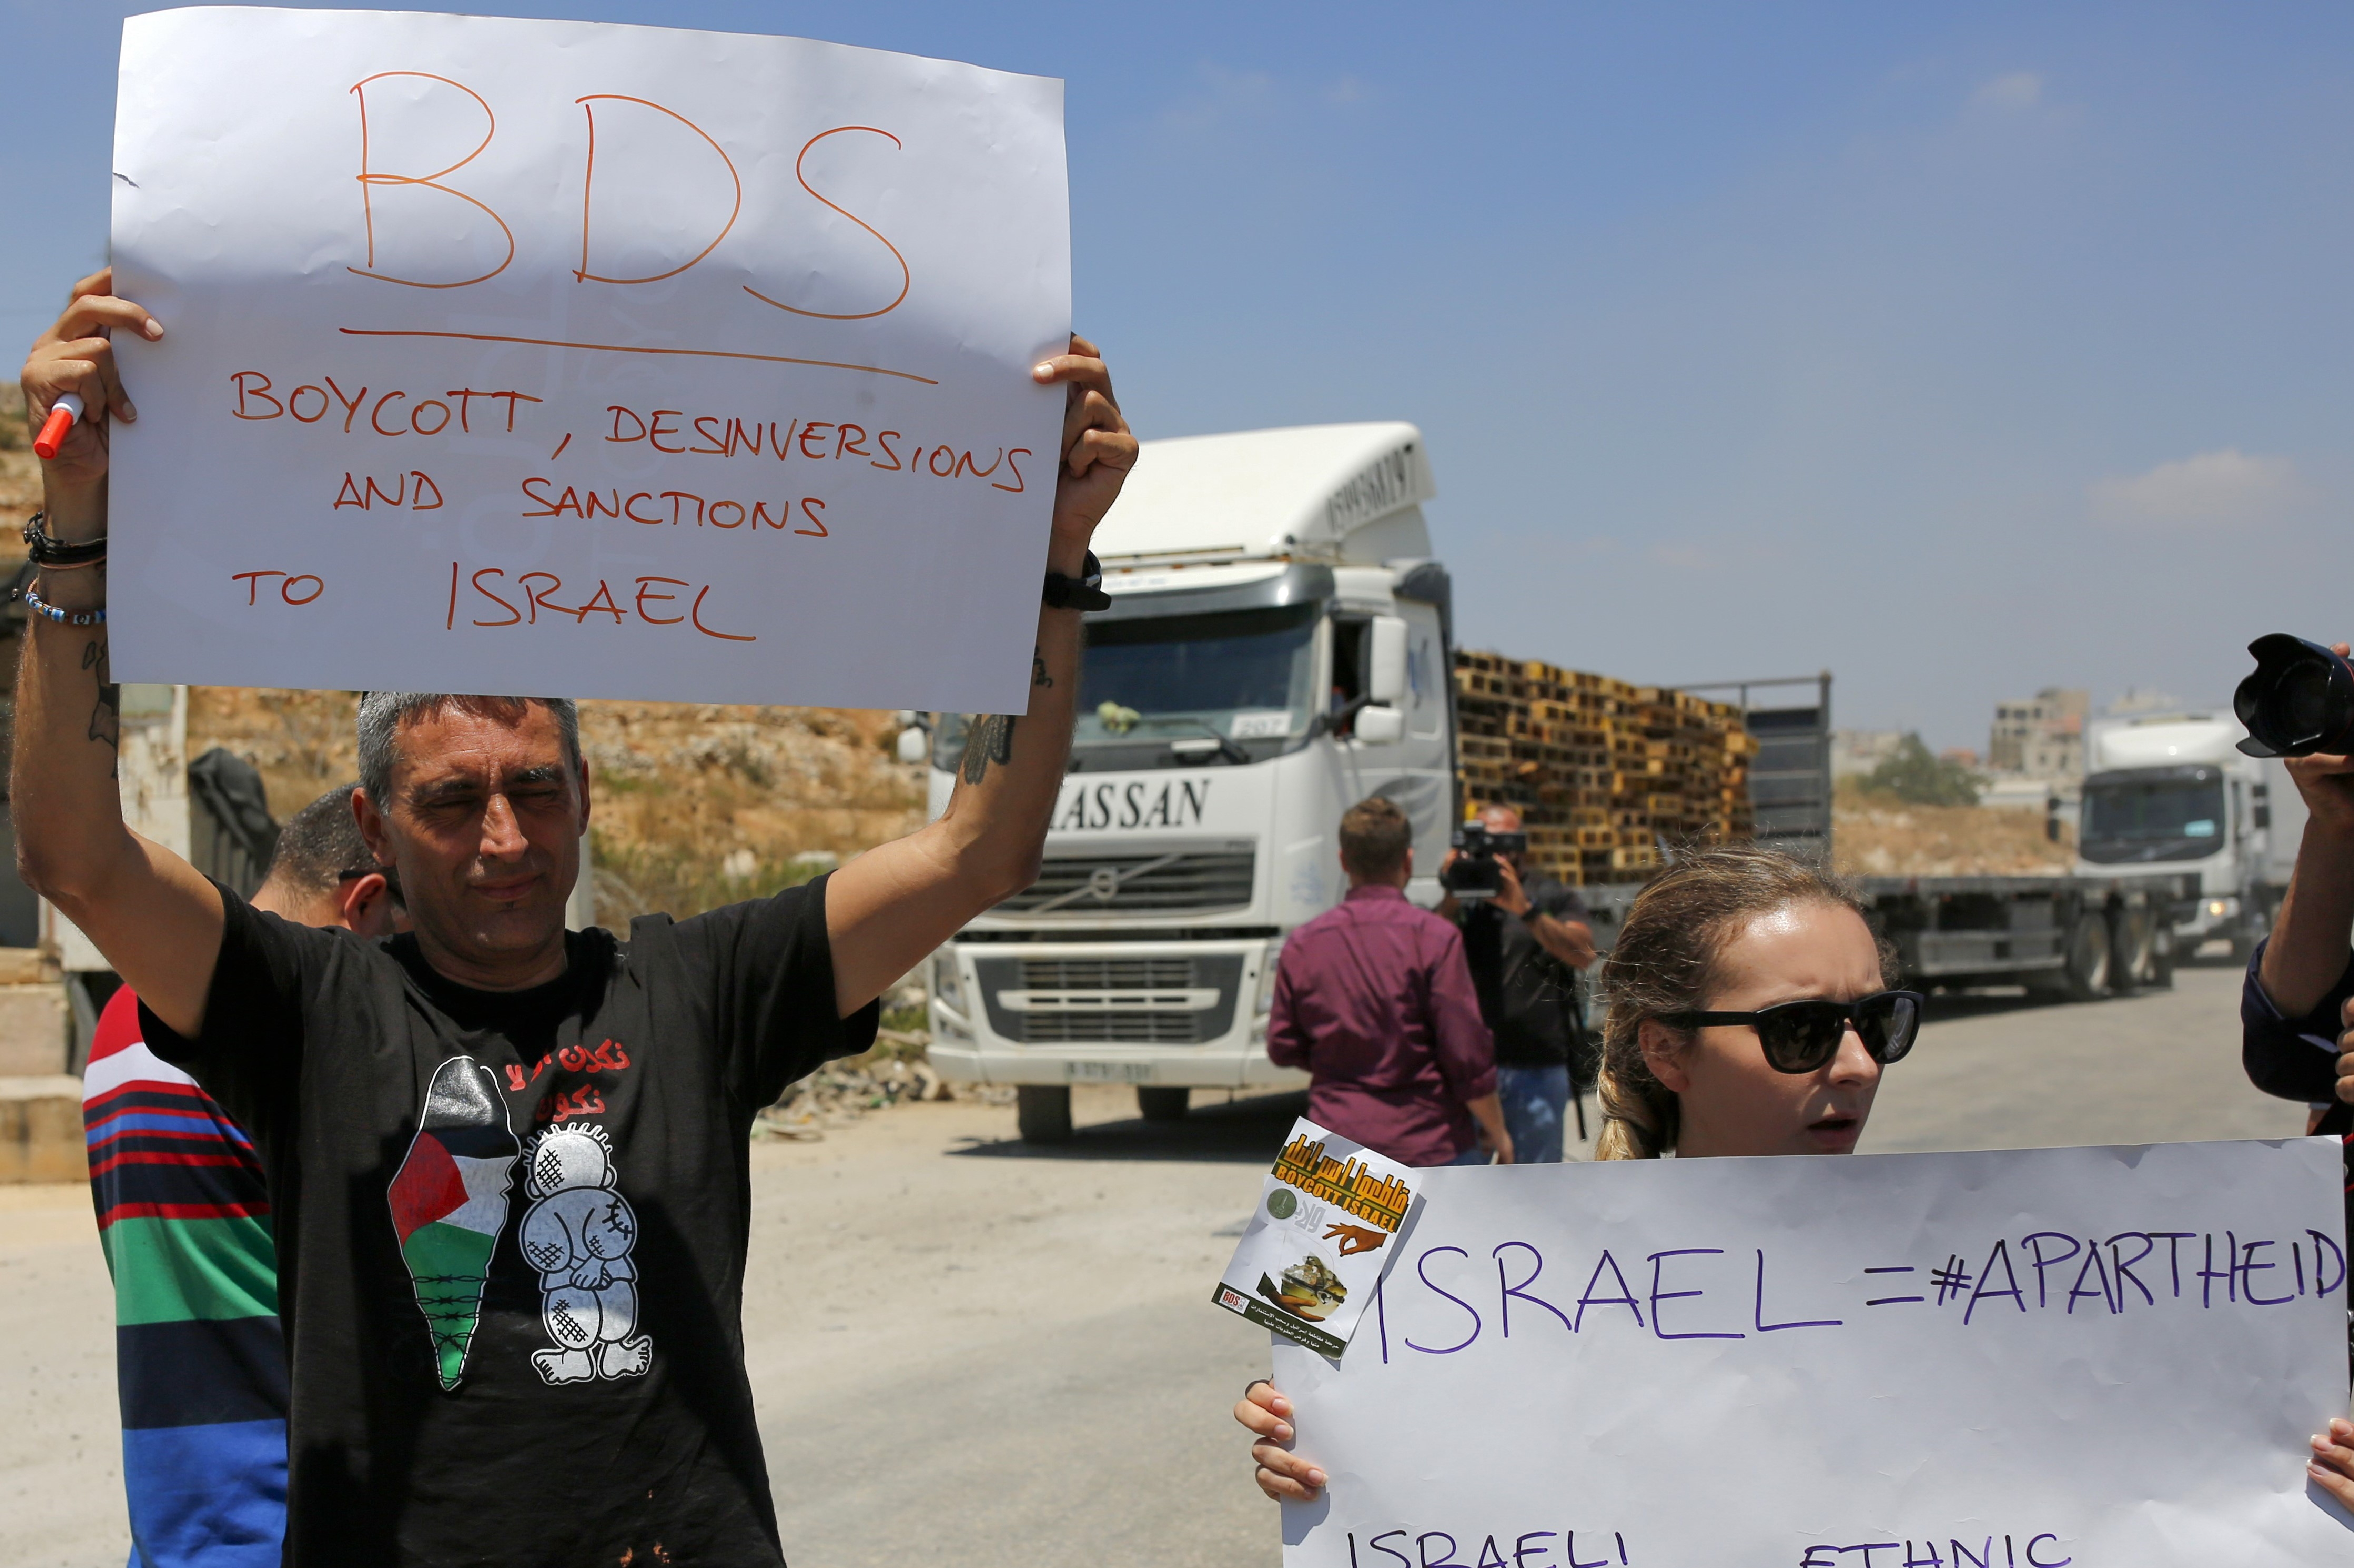 Palestinians demonstrate at the Ofer Israeli checkpoint near Ramallah, through which Israeli goods are usually transported to the West Bank, calling on Palestinians to boycott such imports, on August 6, 2019